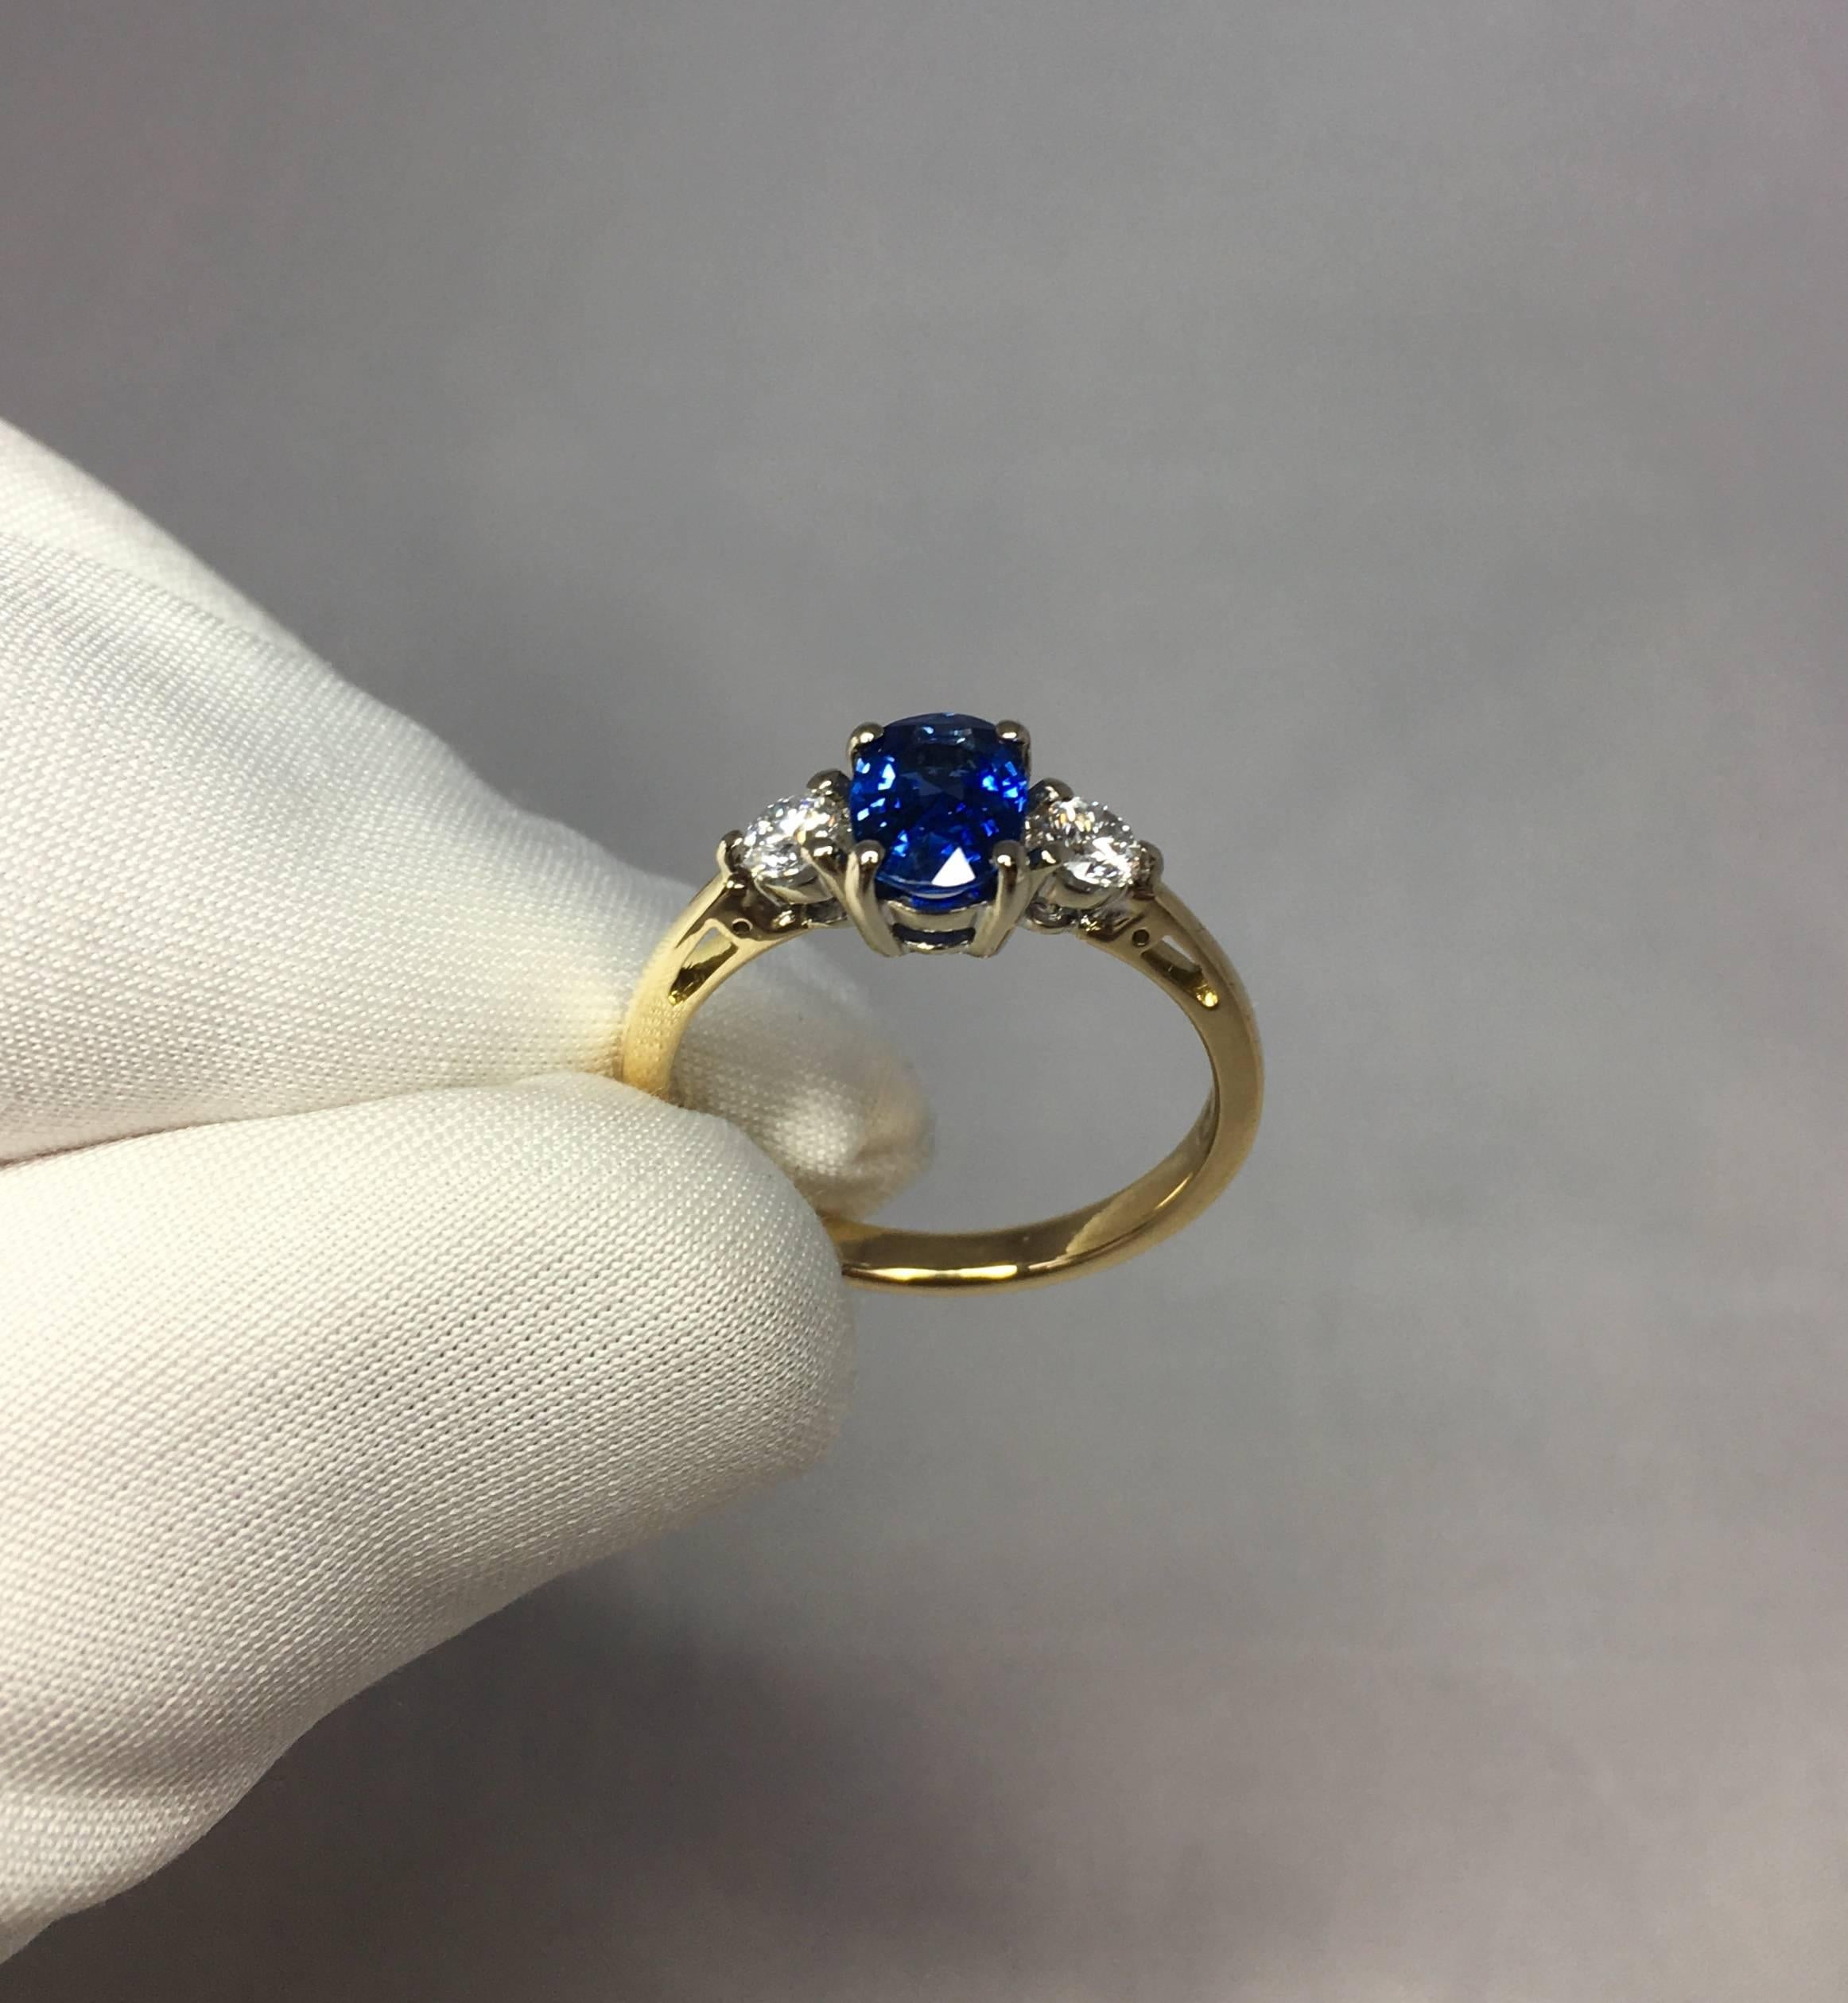 ceylon dsc ring gold at j diamond colored master id for rings jewelry engagement cushion blue sale carat karat sapphire